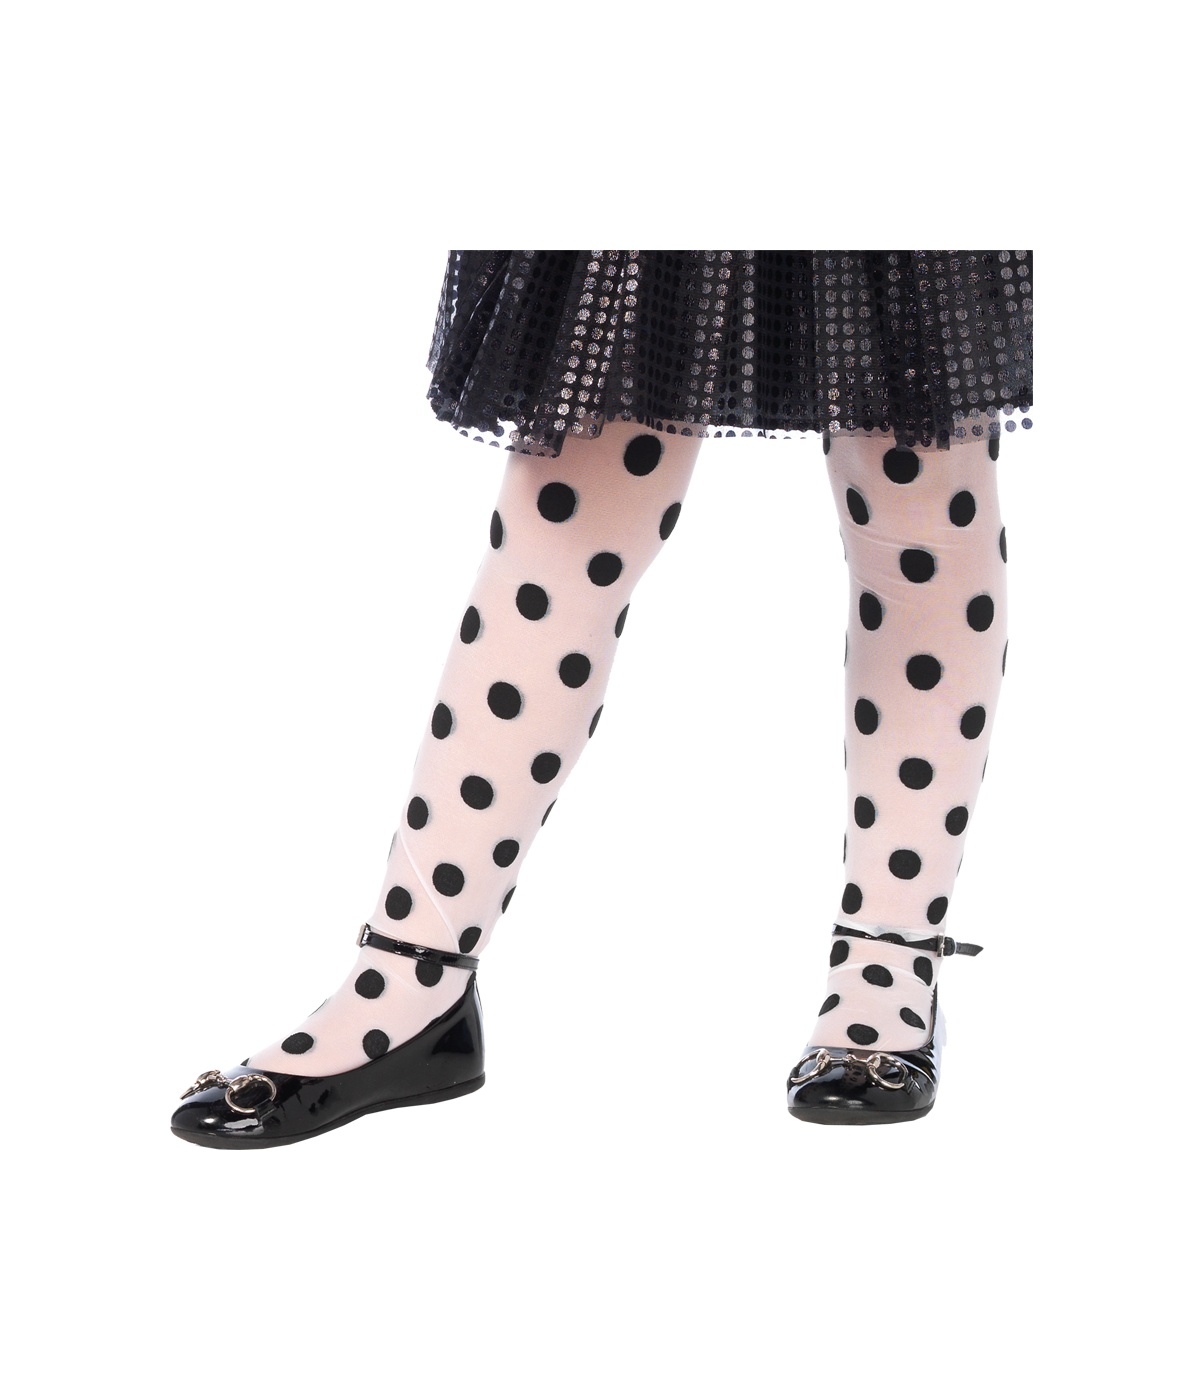 Black And White Polka Dot Girls Tights Costume Accessories